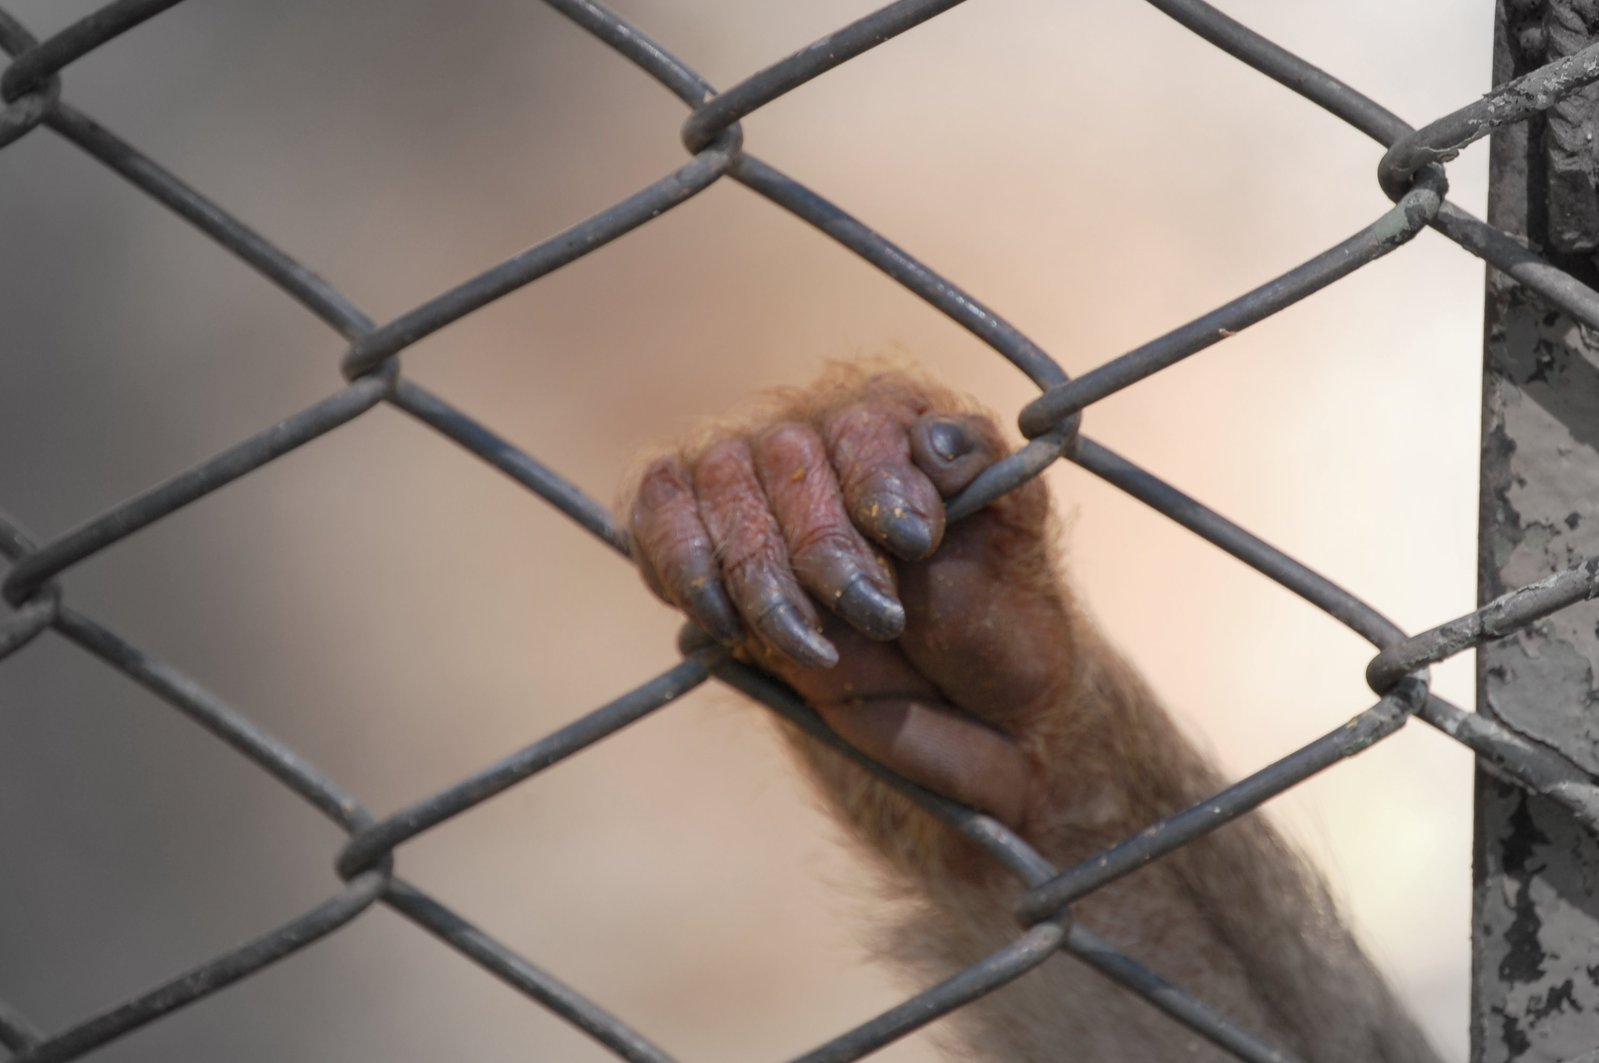 Jailed monkey